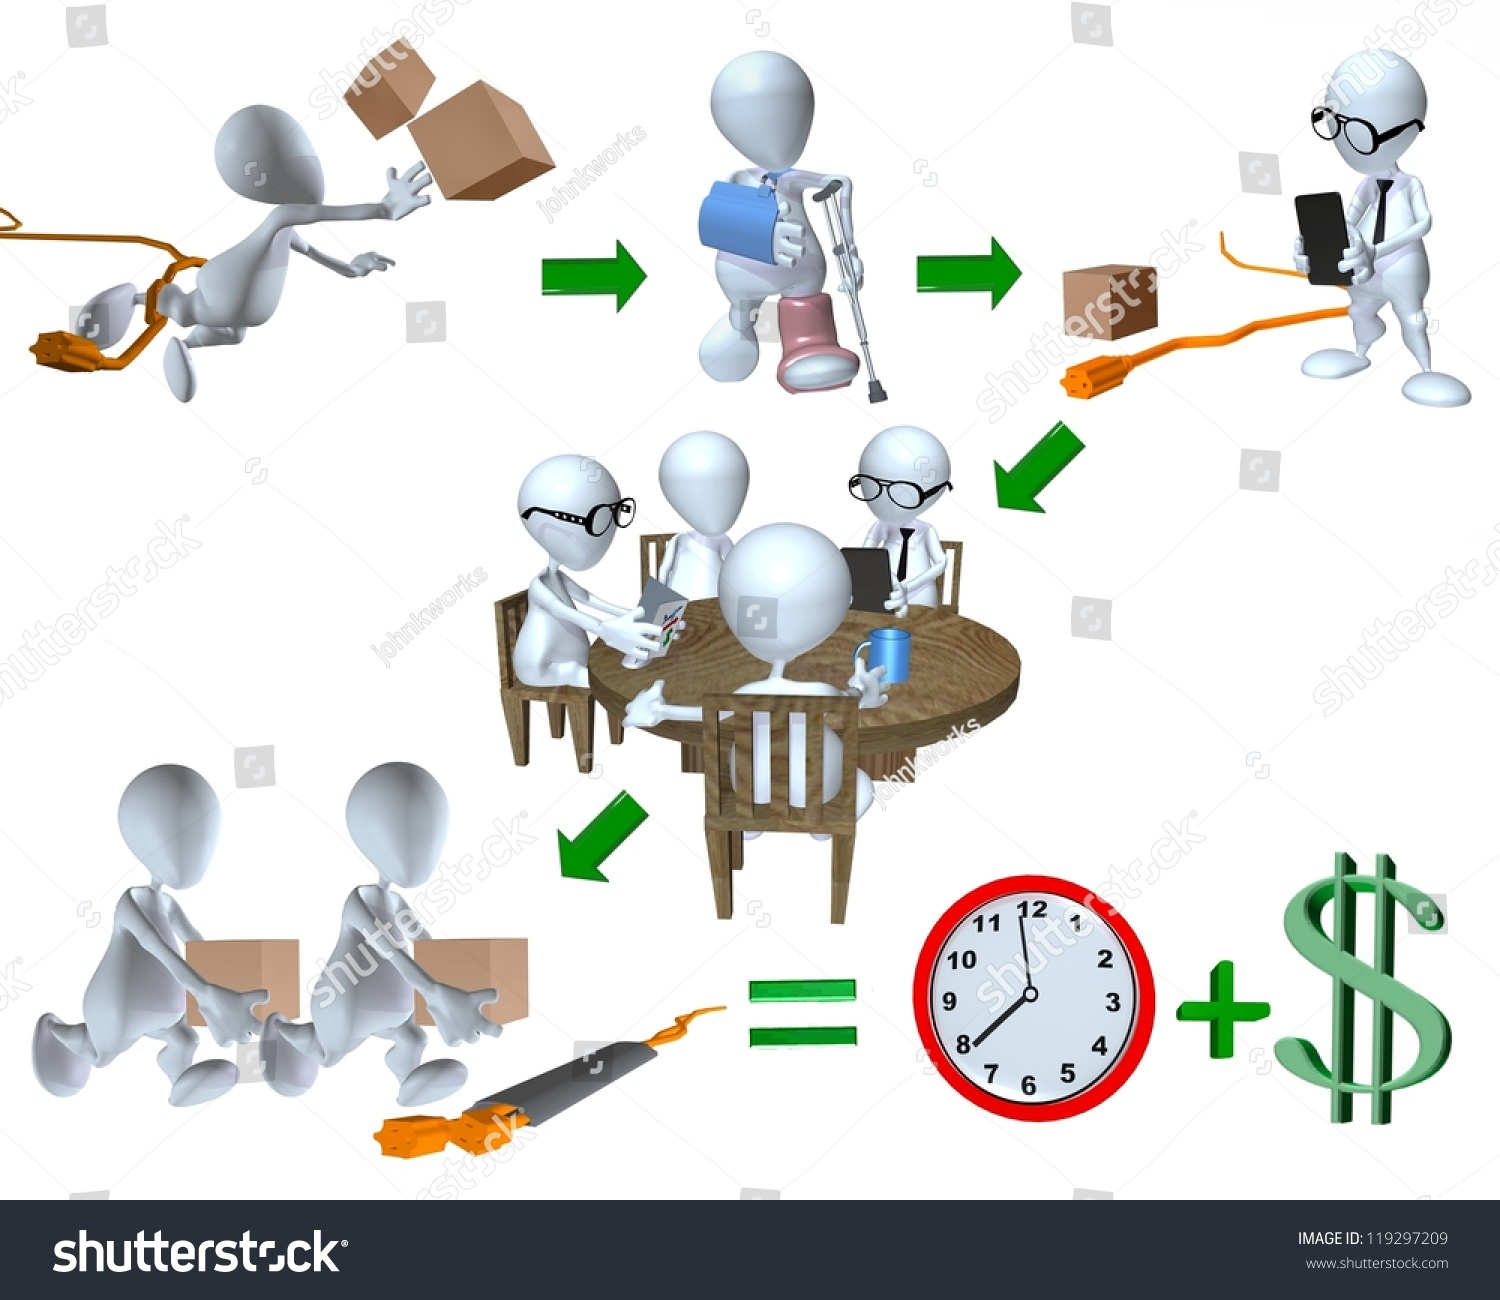 d man risk management accident example stock illustration 3d man risk management accident example for the workplace